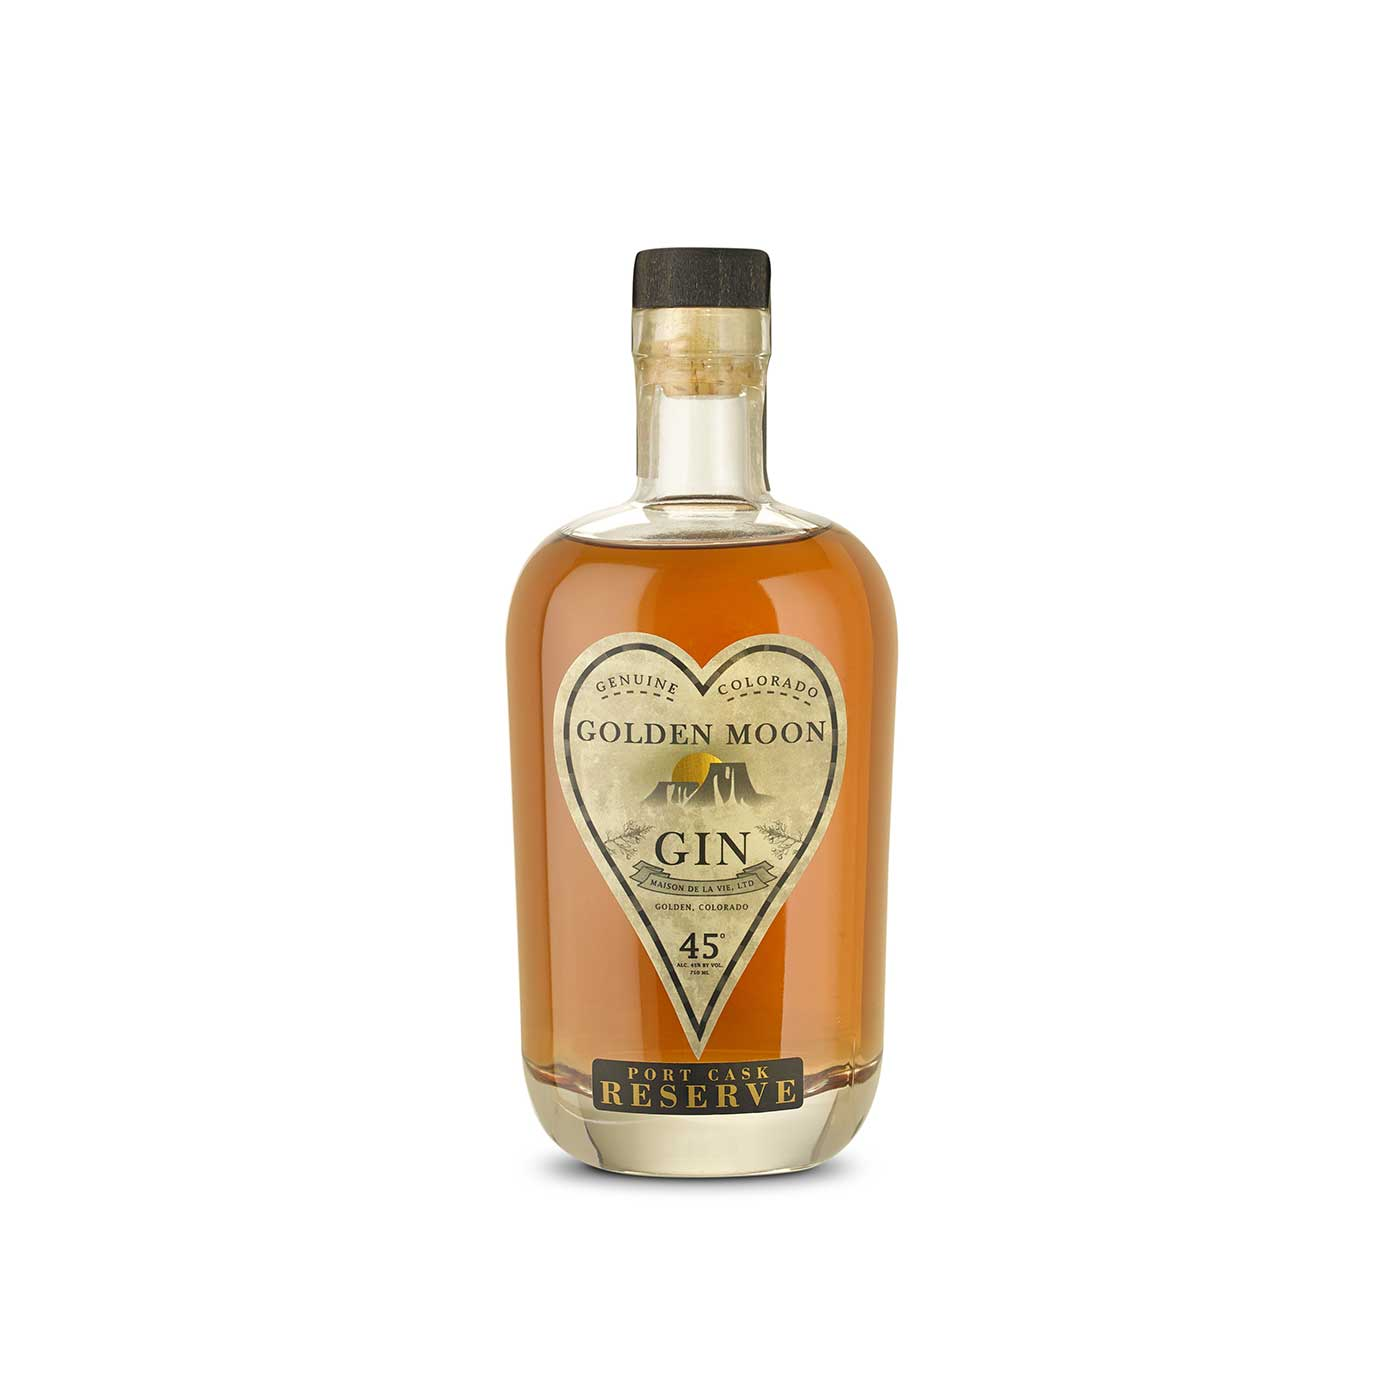 Golden Moon Port Cask aged Gin Bottle